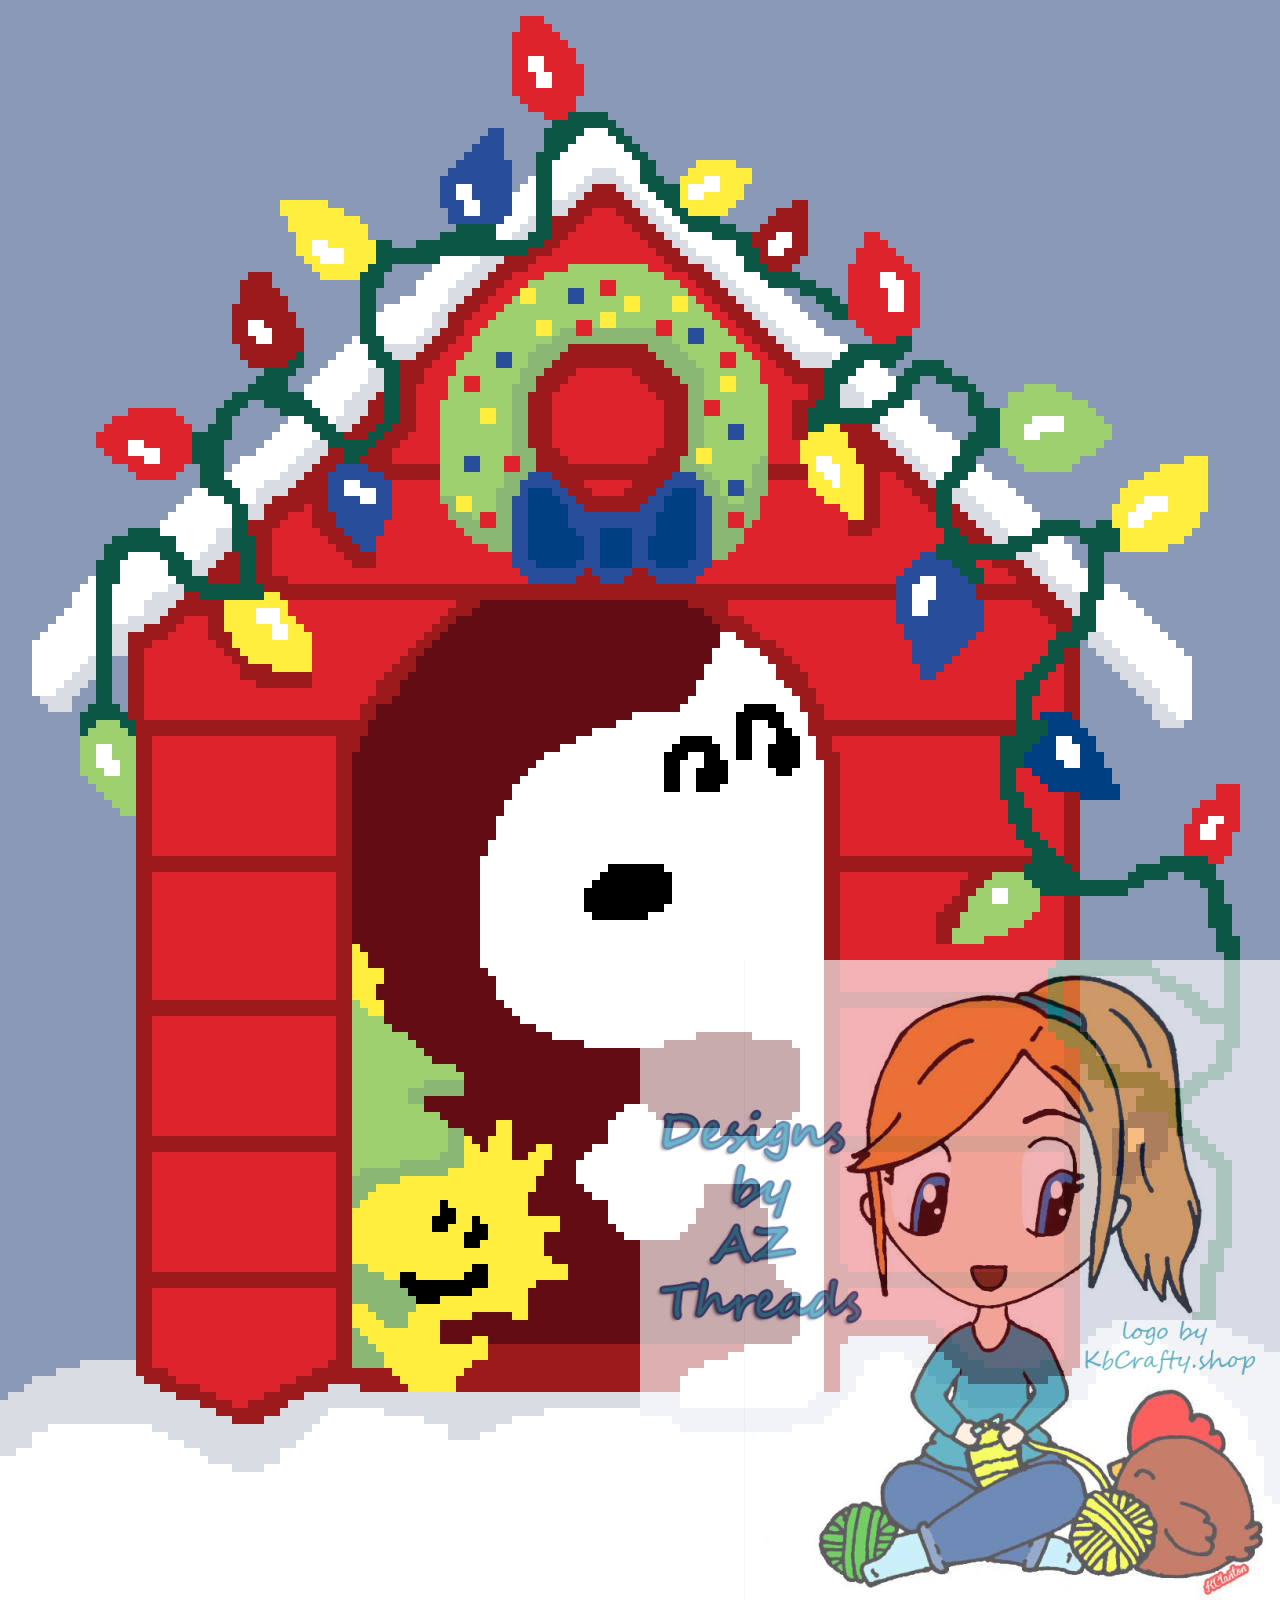 snoopy christmas house grid and written 160 200 azthreads